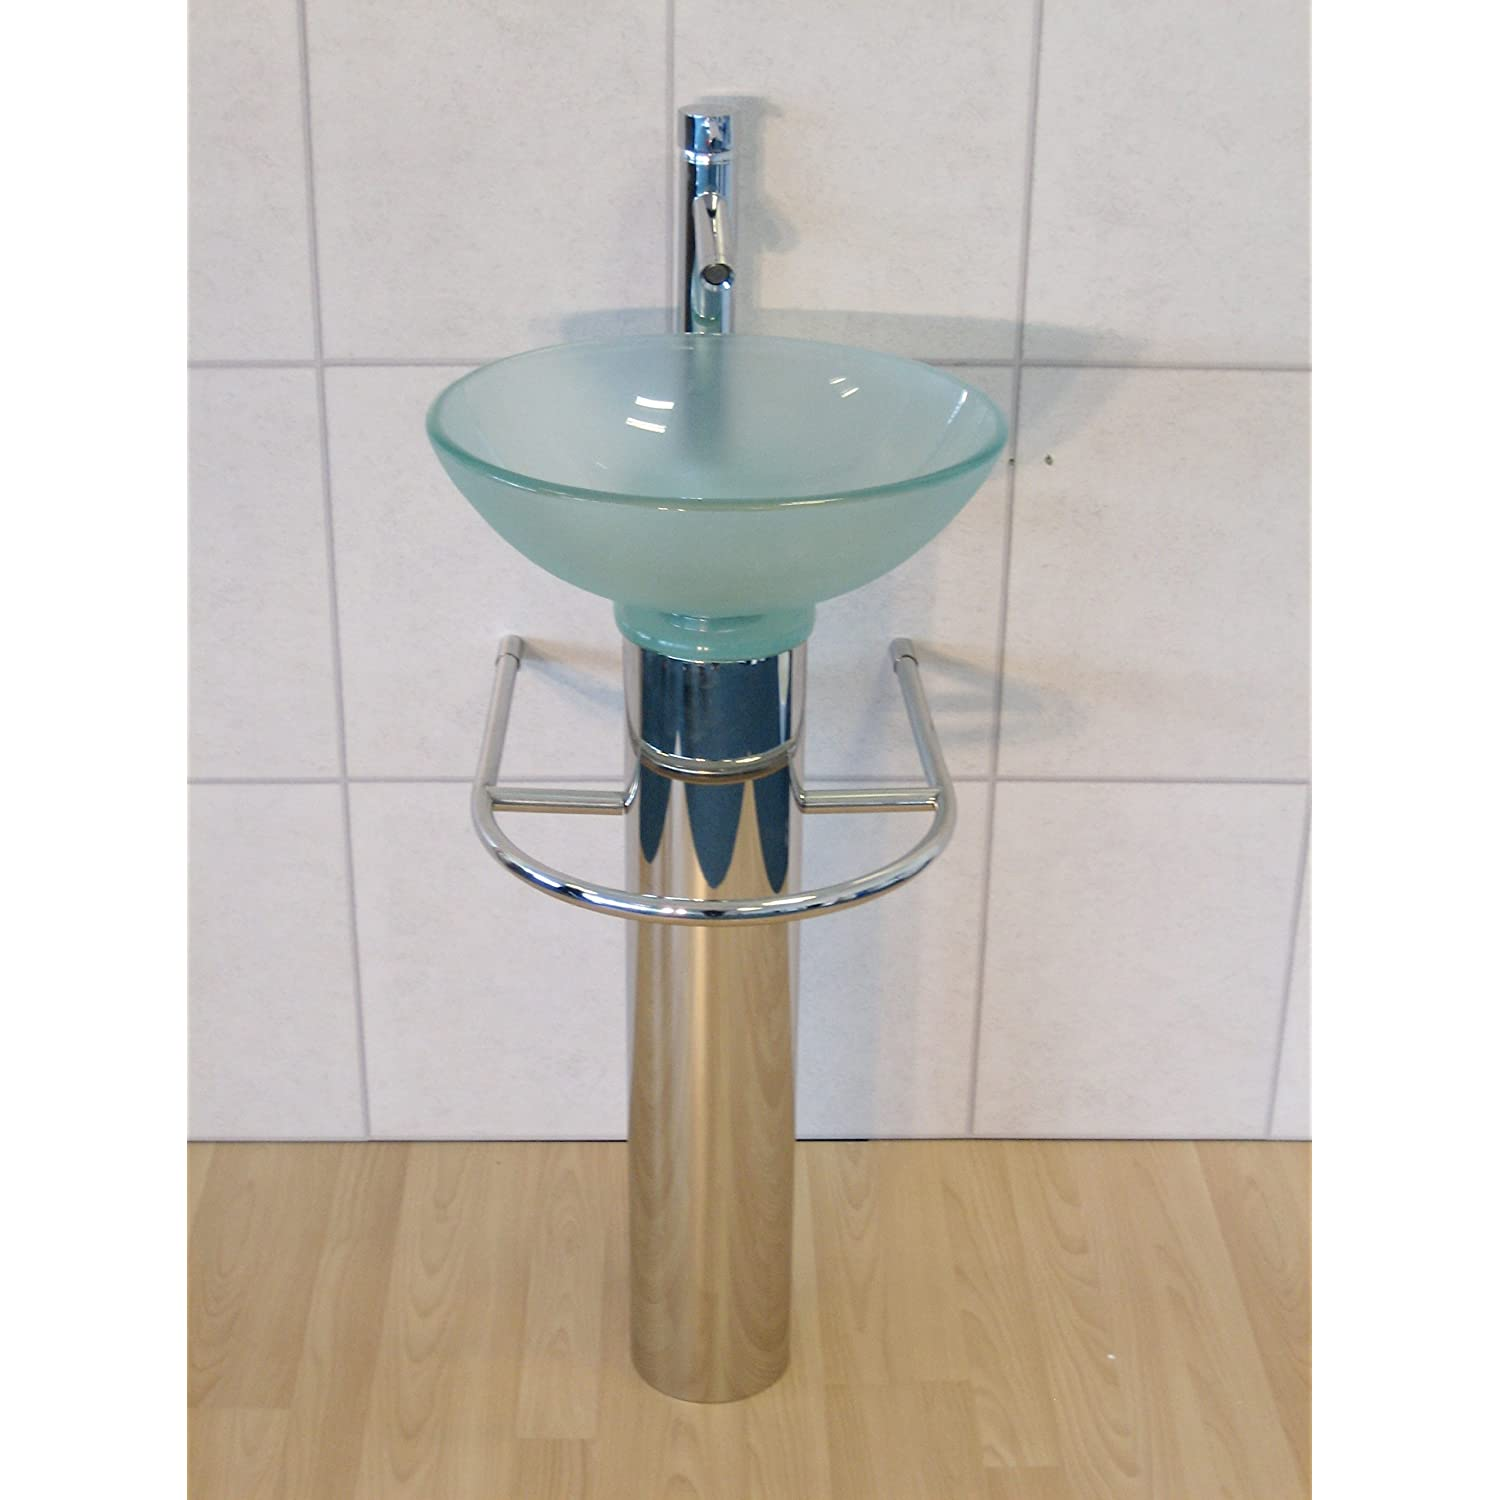 Round Pedestal Sink : Designer Bathroom Sink Round Clear Glass Wash Basin Pedestal Tap Trap ...